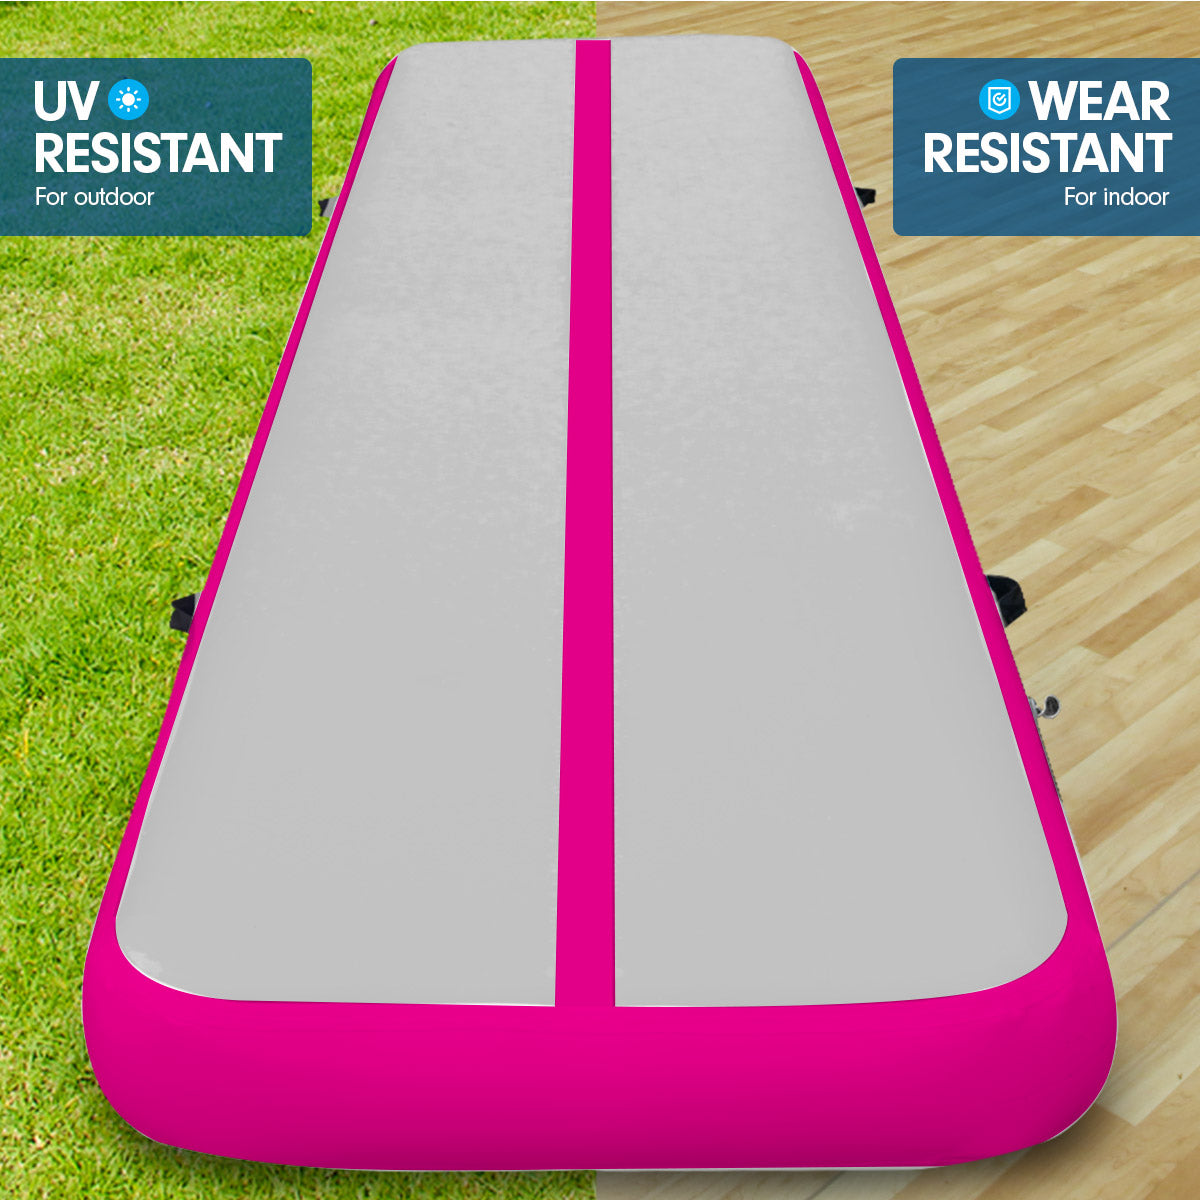 4m x 2m Airtrack Tumbling Mat Gymnastics Exercise Air Track Grey Pink